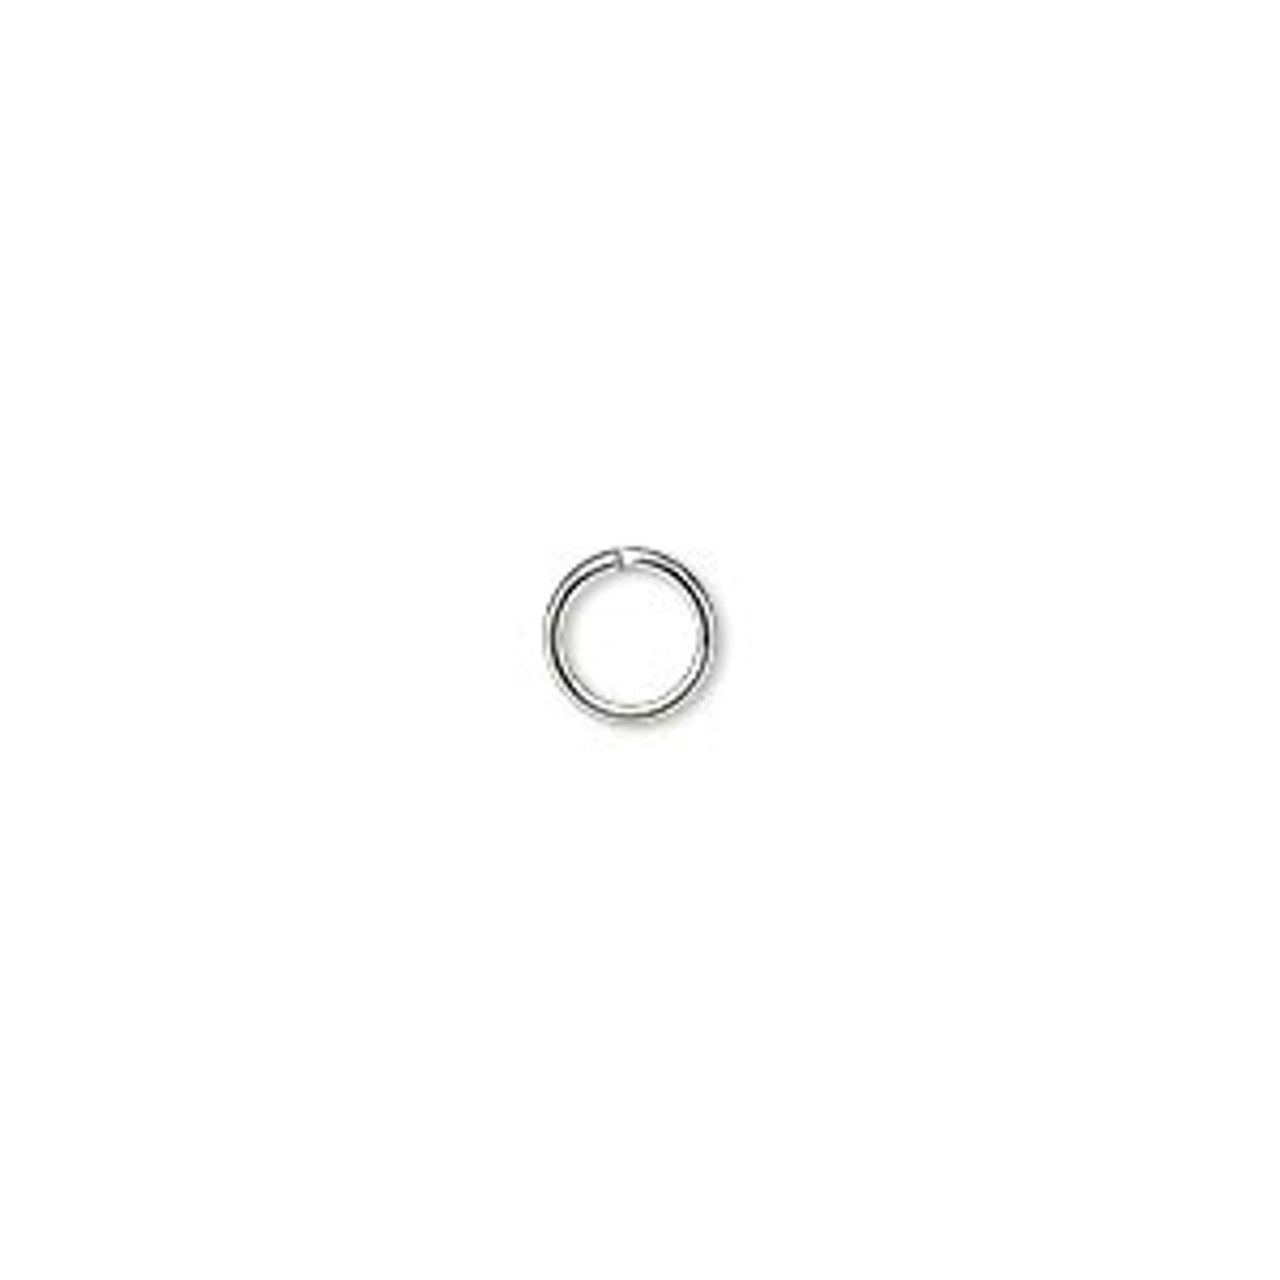 6mm 20 Gauge Silver Plated Jump Rings (100 Pack)